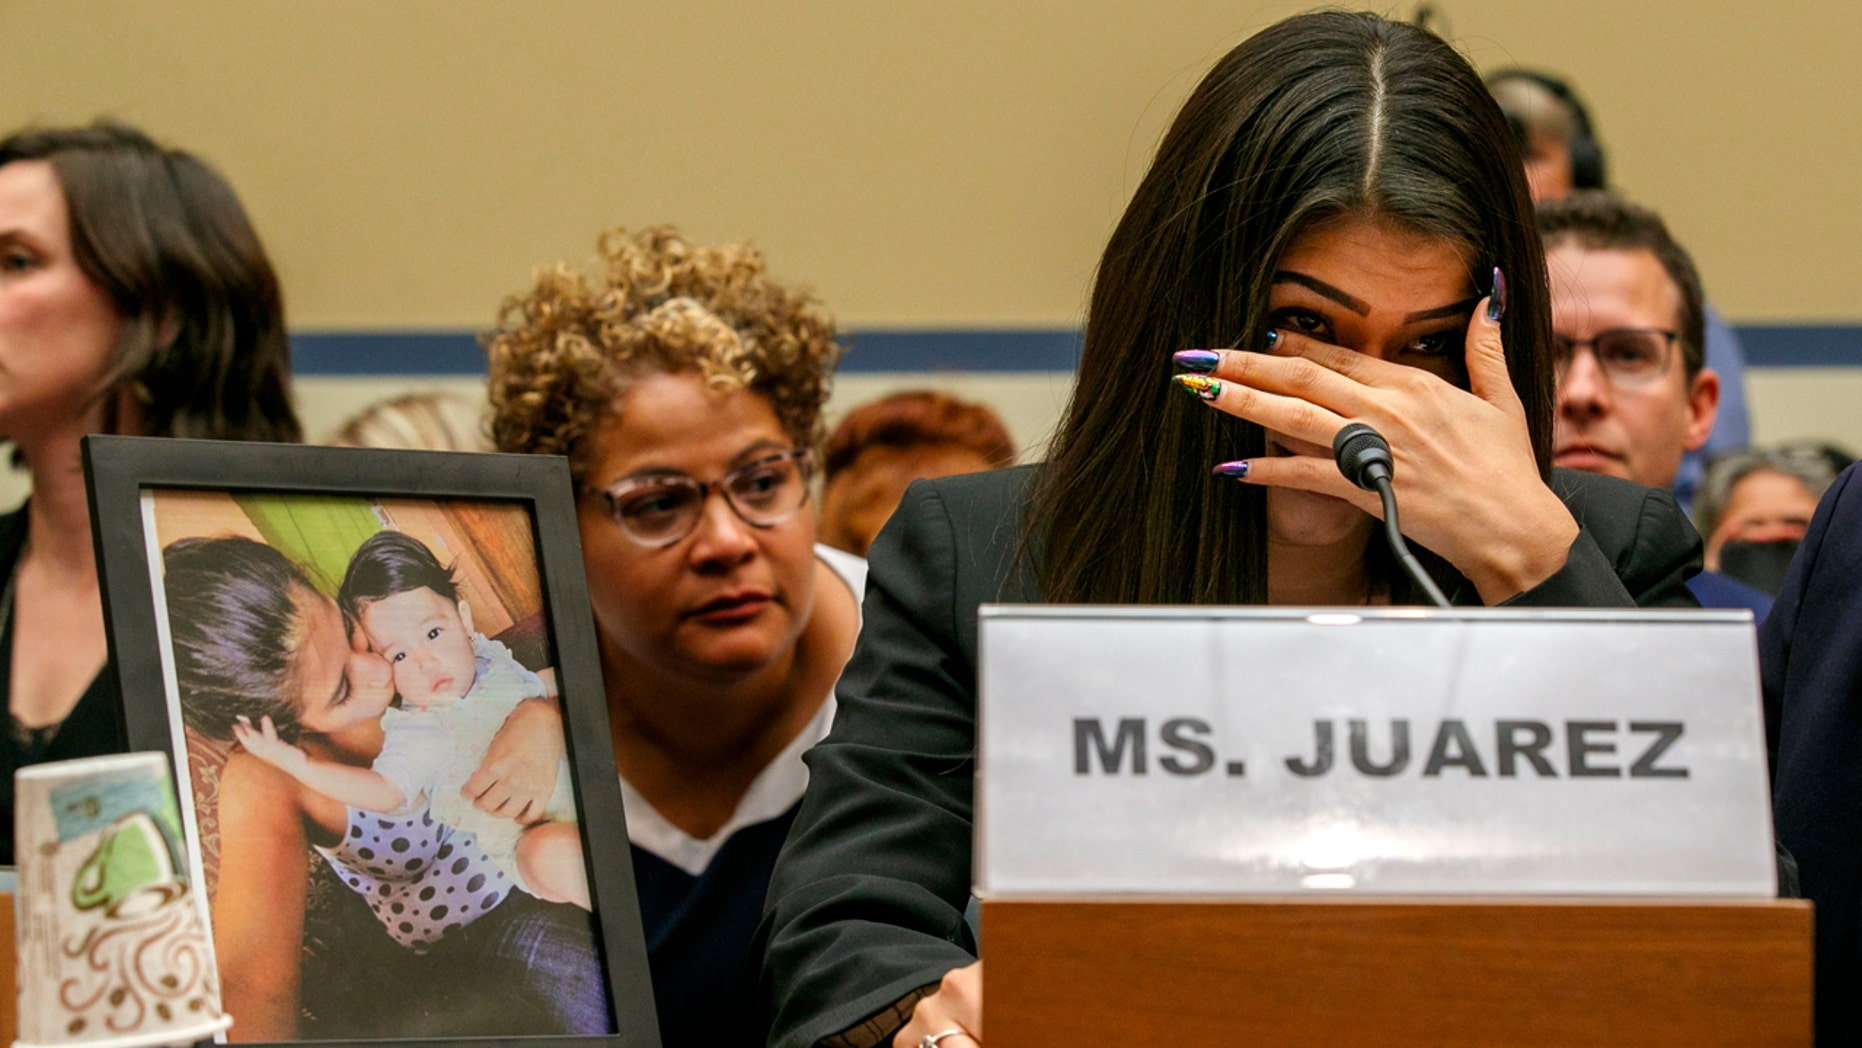 Yazmin Juárez reacts as a photo of her daughter, Mariee, who died after being released from detention by U.S. Immigration and Customs Enforcement, is placed next to her at a House Oversight subcommittee hearing on Civil Rights and Civil Liberties to discuss treatment of immigrant children at the southern border, Wednesday, July 10, 2019, on Capitol Hill in Washington. (AP Photo/Jacquelyn Martin)